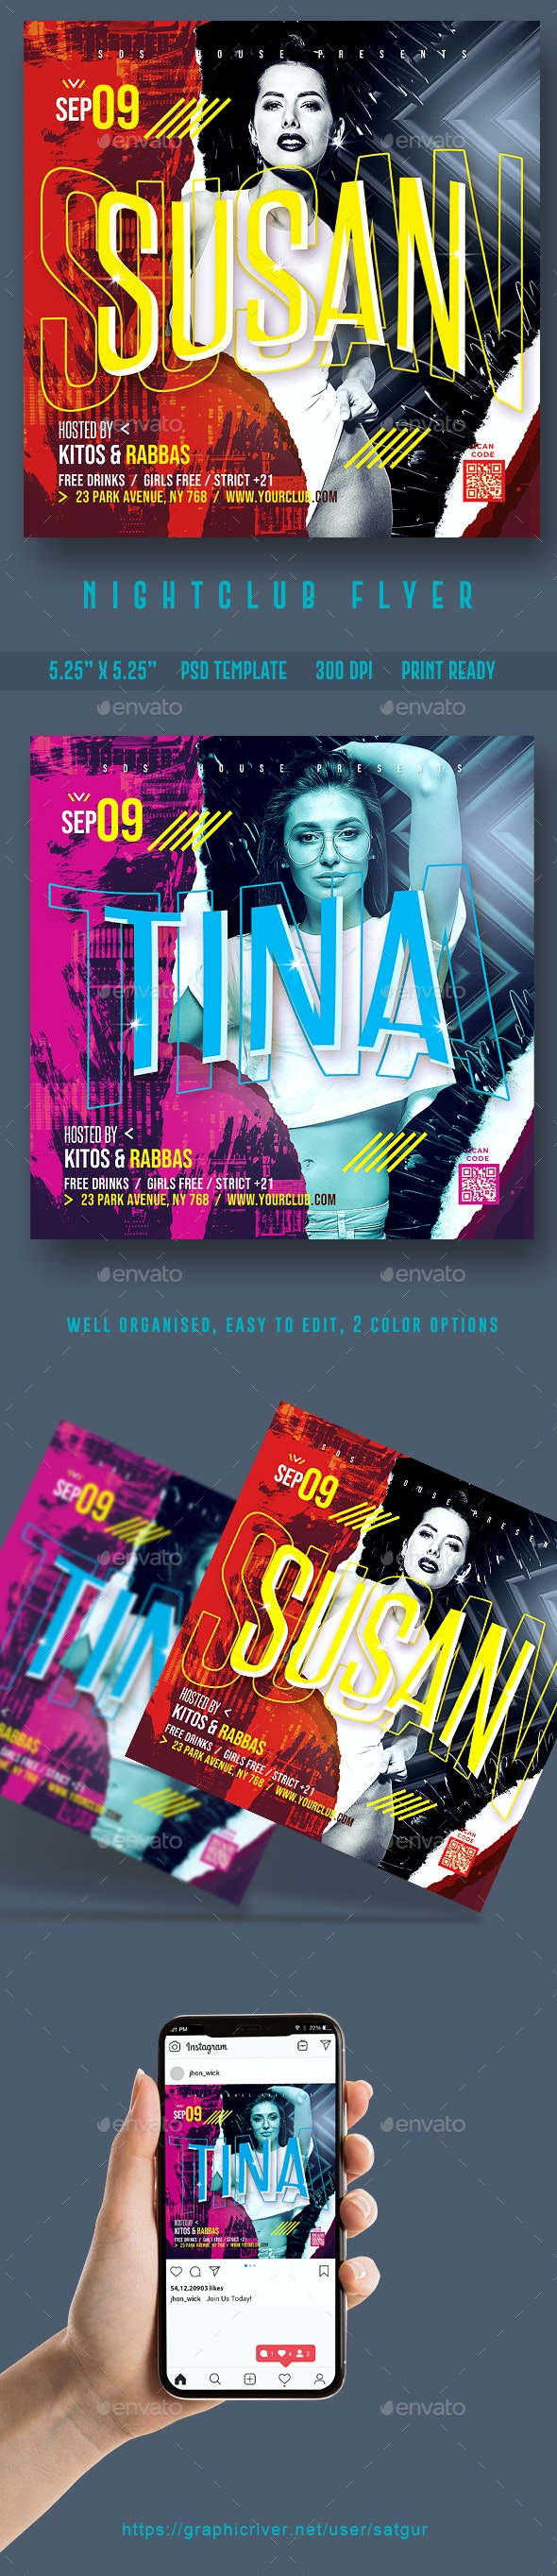 Night Club Flyer Template  PSD - Clubs & Parties Events